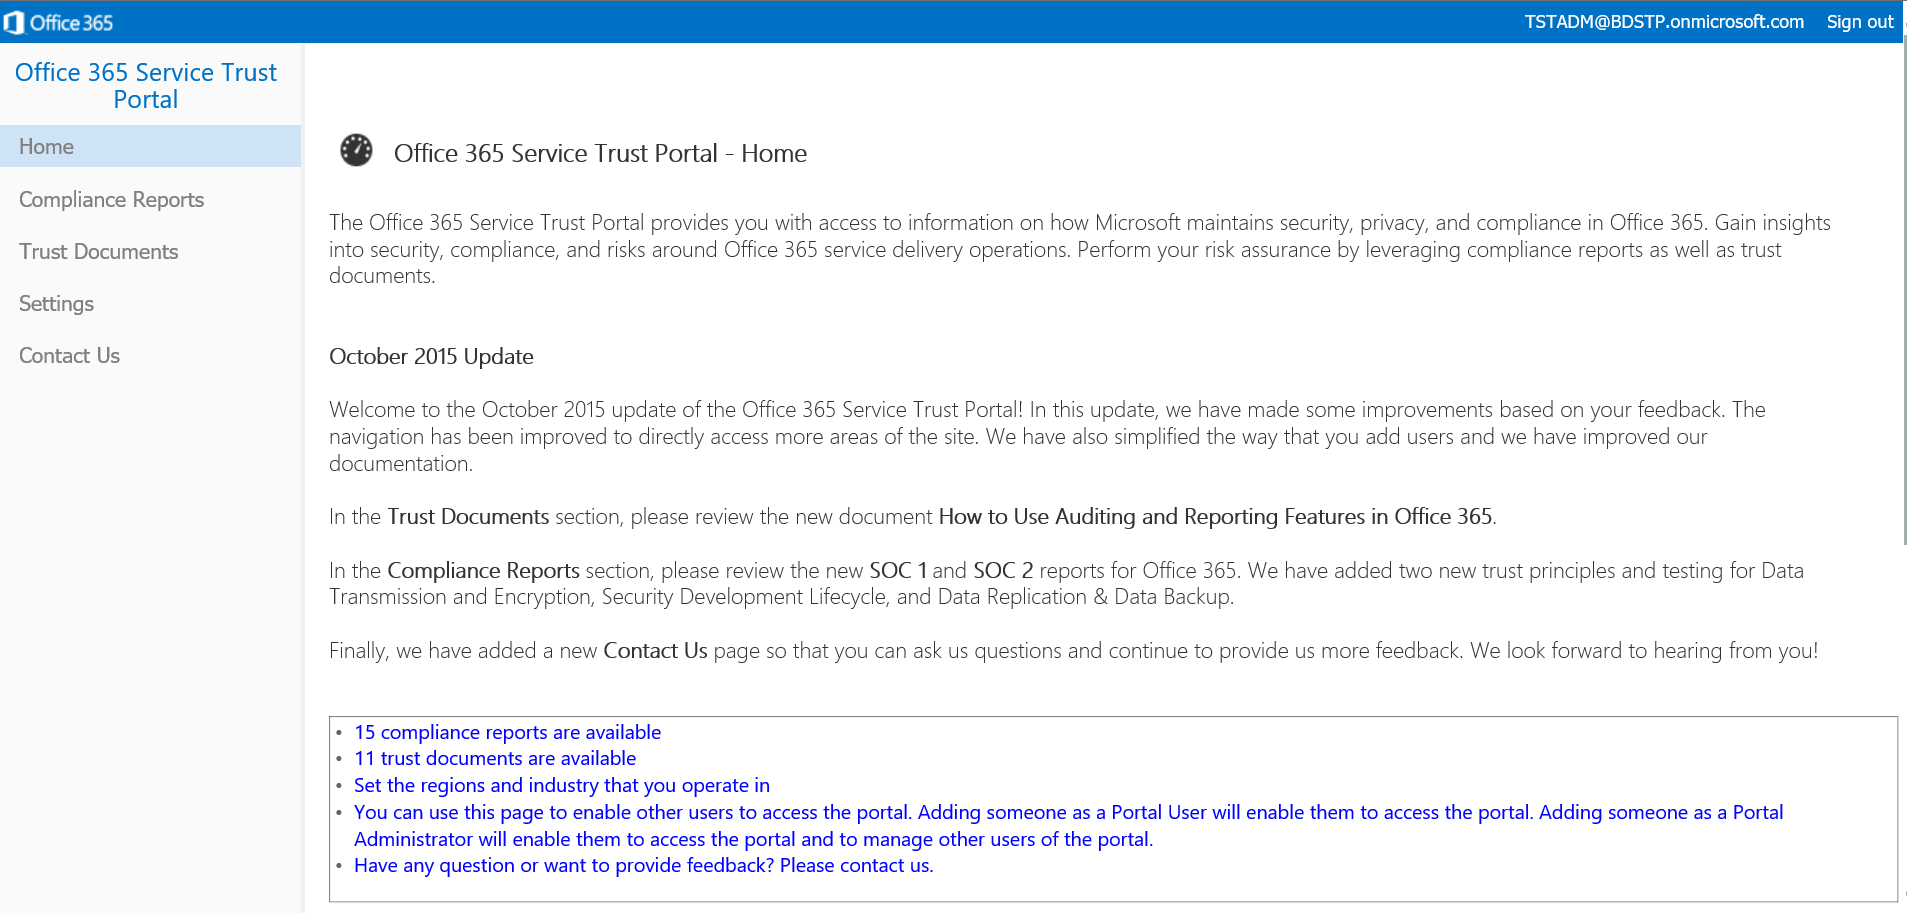 Announcing the Office 365 Service Trust Portal - Microsoft 365 Blog